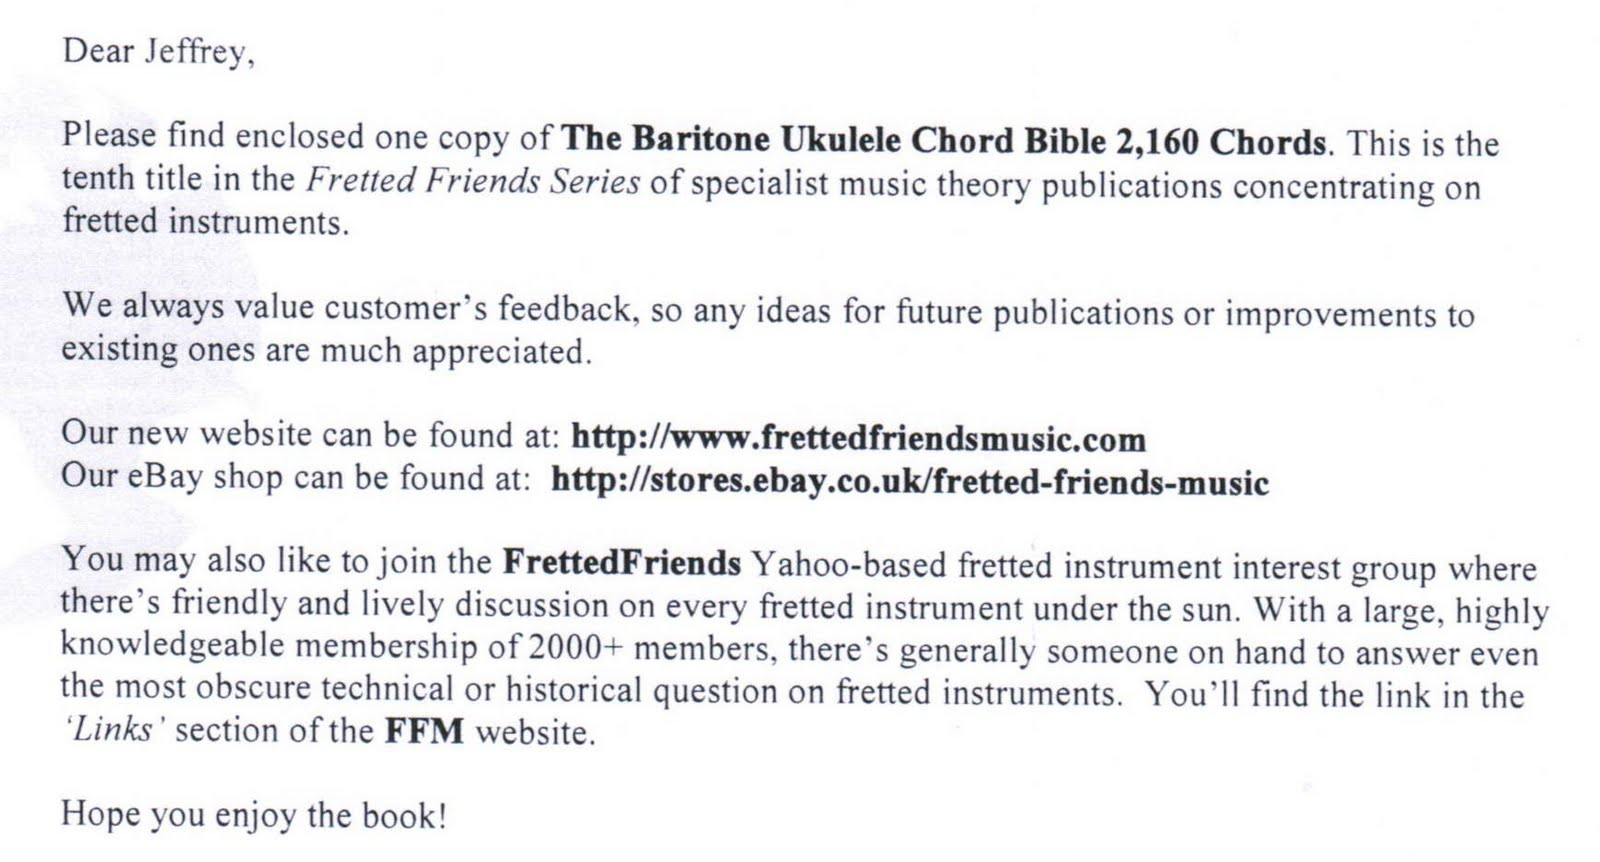 Humble baritonics fretted friends the baritone ukulele chord bible fretted friends the baritone ukulele chord bible hexwebz Images